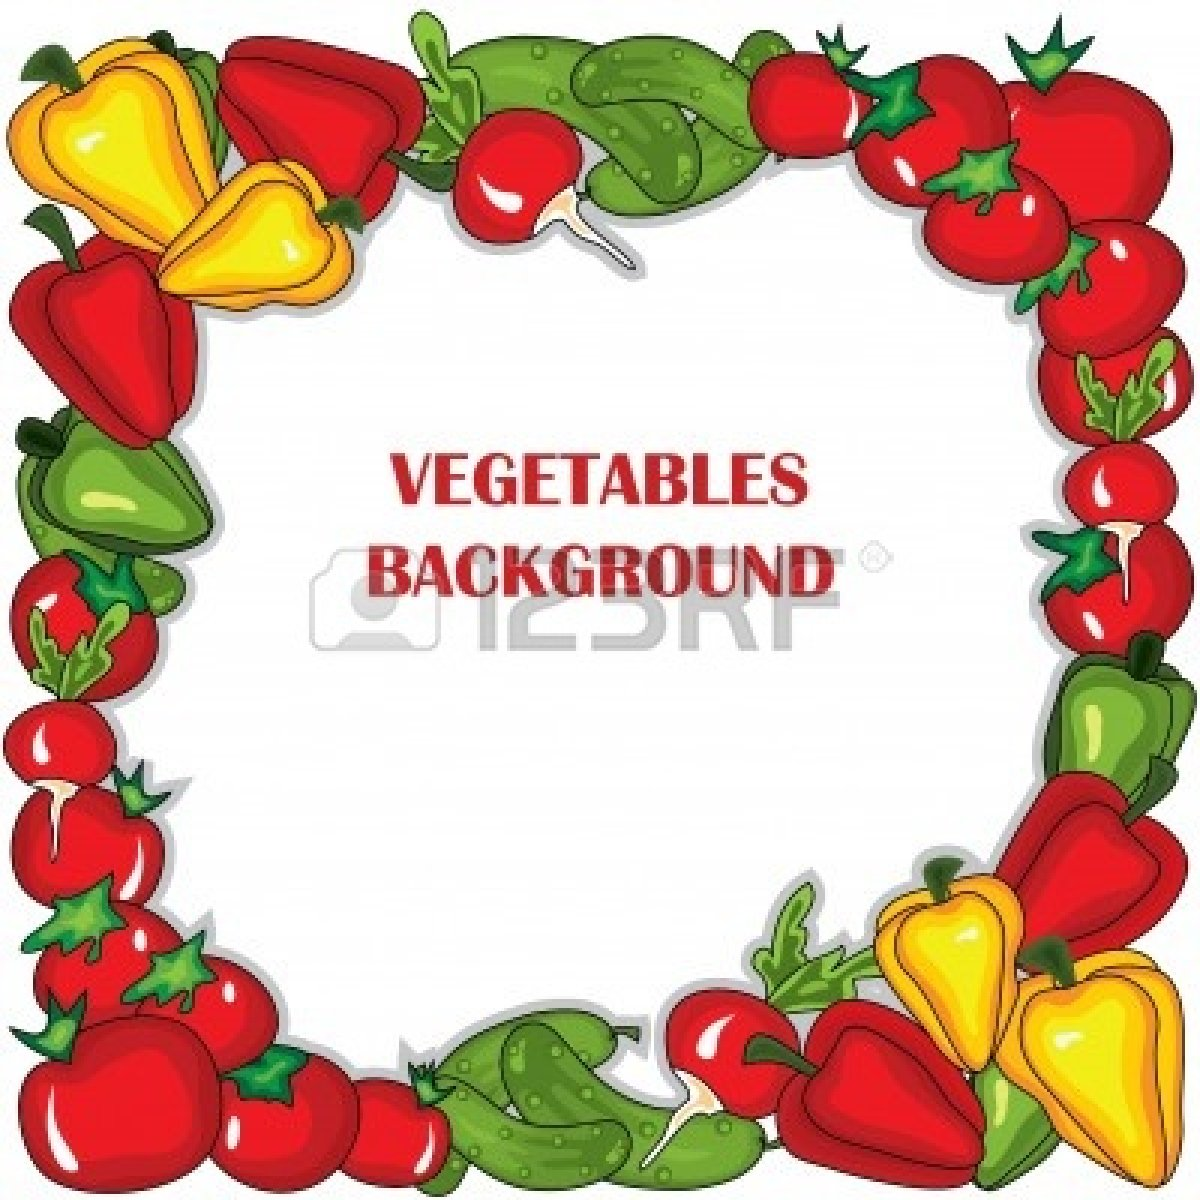 Background clipart vegetable garden #9